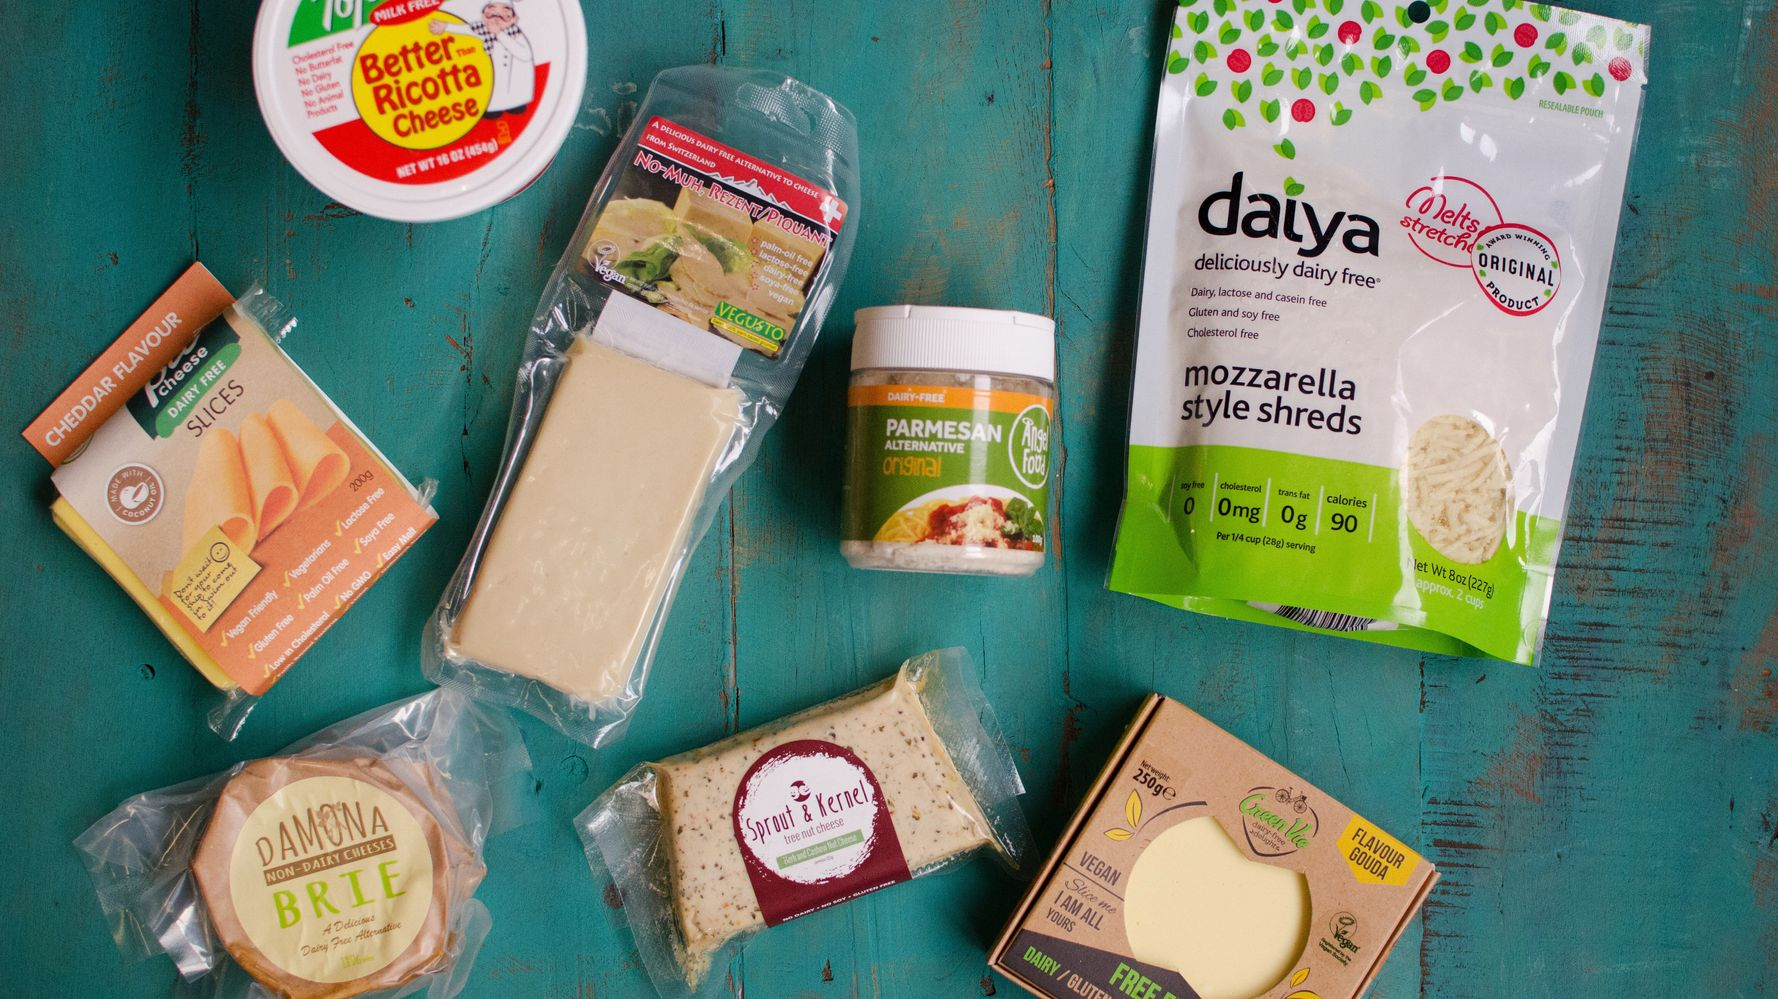 Vegan Cheese Taste Test Here S What We Think Of Them Huffpost Australia Food Drink